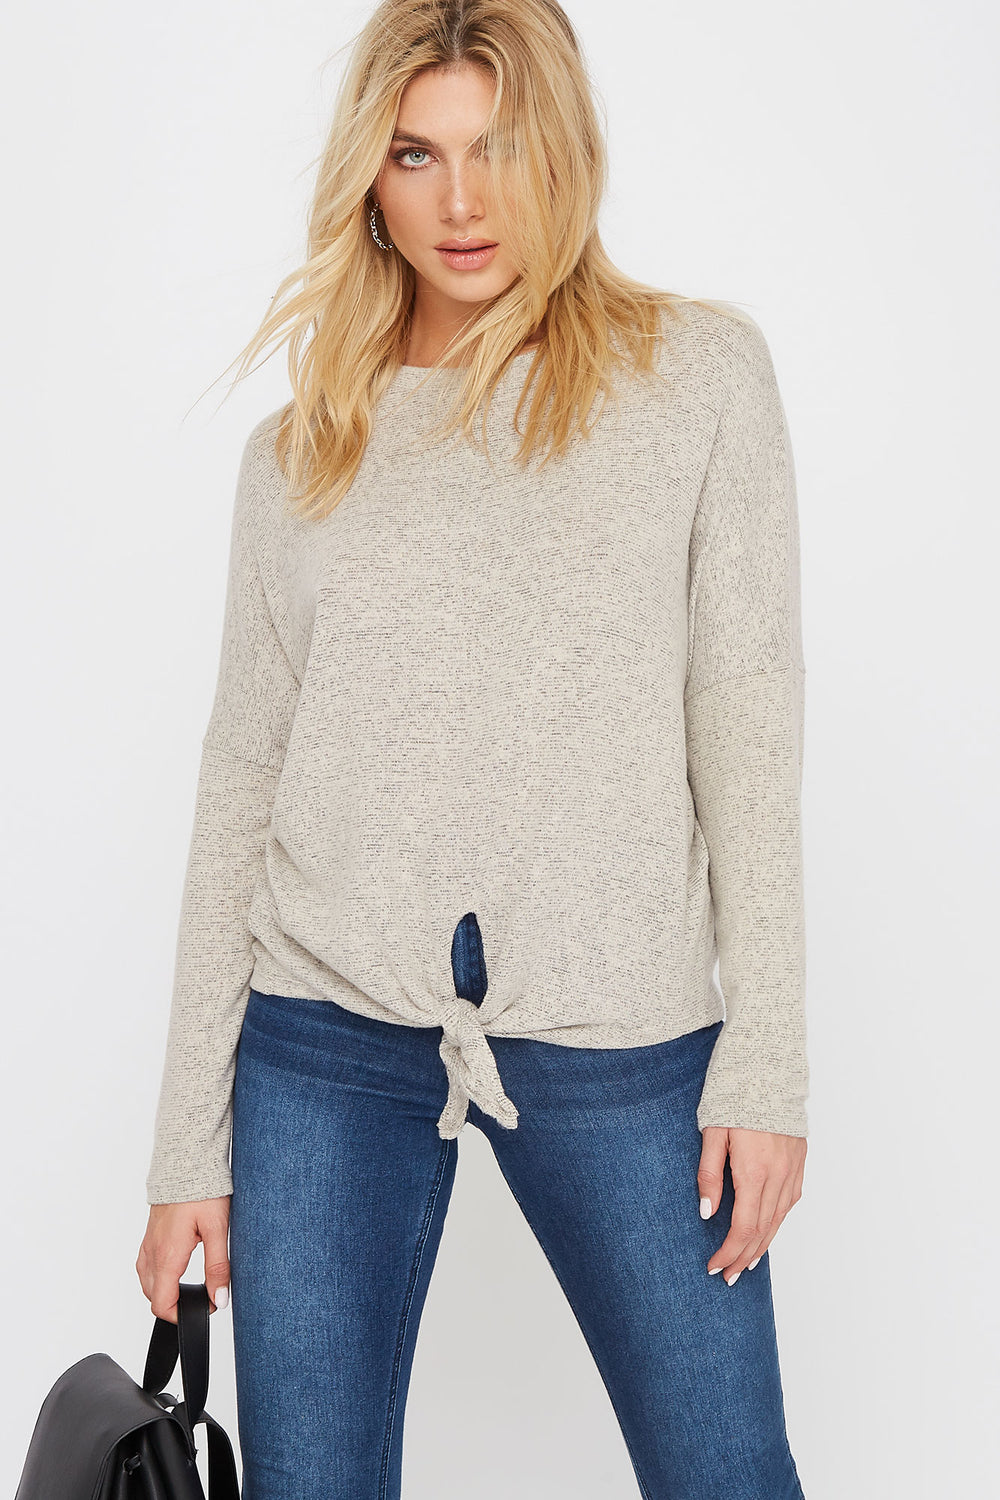 Soft Tie Dolman Long Sleeve Oatmeal